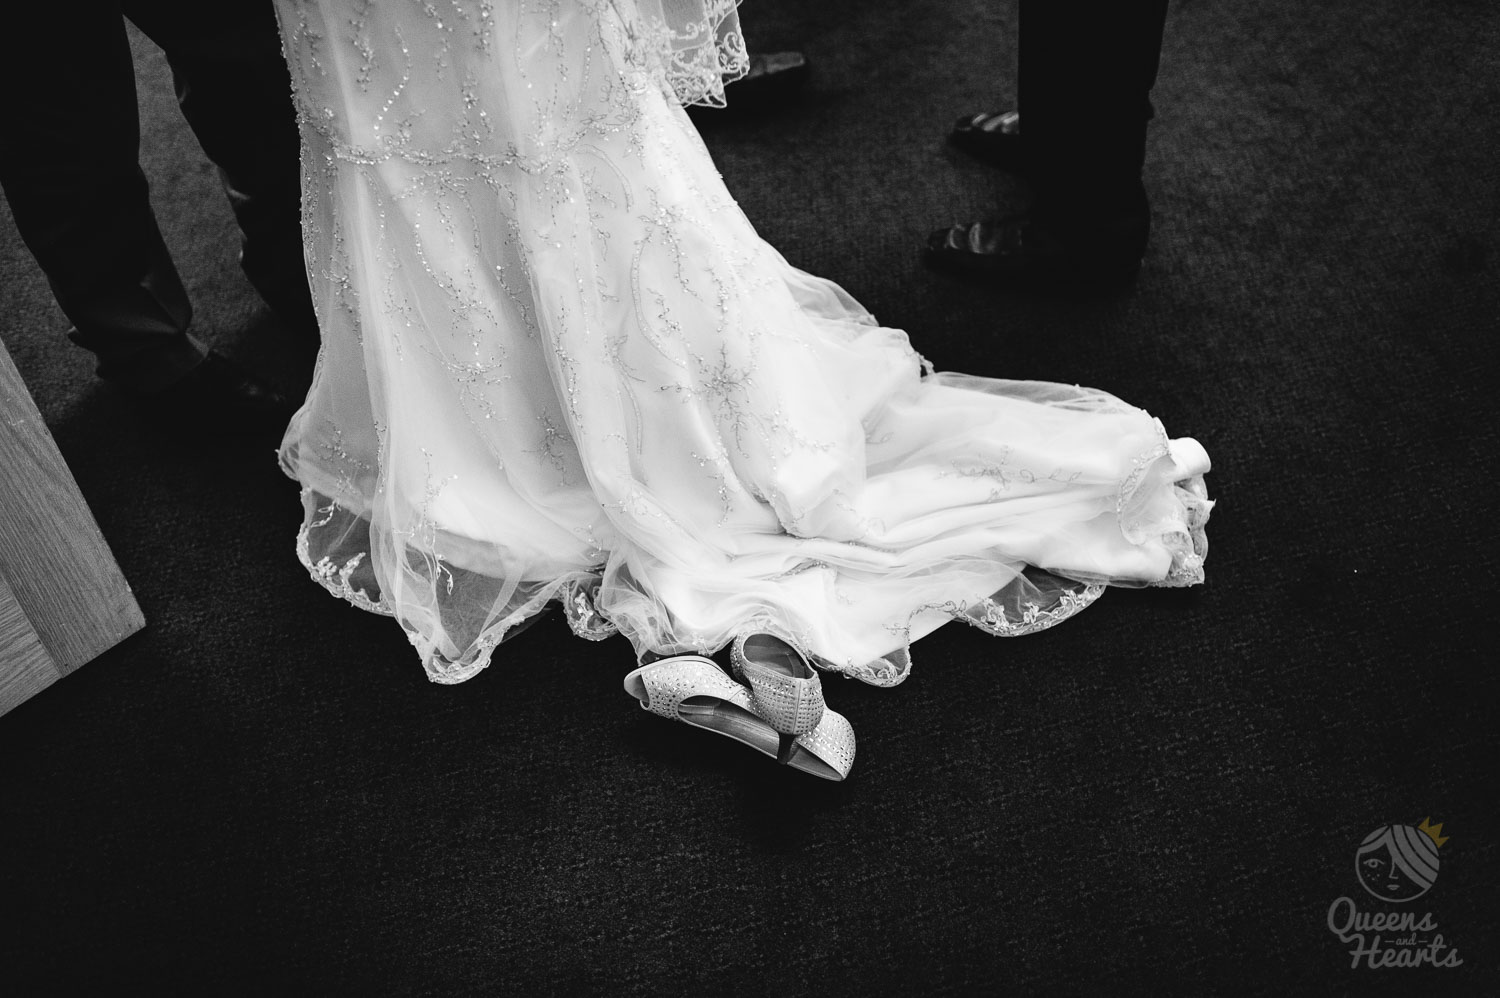 Concourse_hotel_High_Point_church_wedding_photography_Sally_Sunil_by_Queens_Hearts_Photography-0239